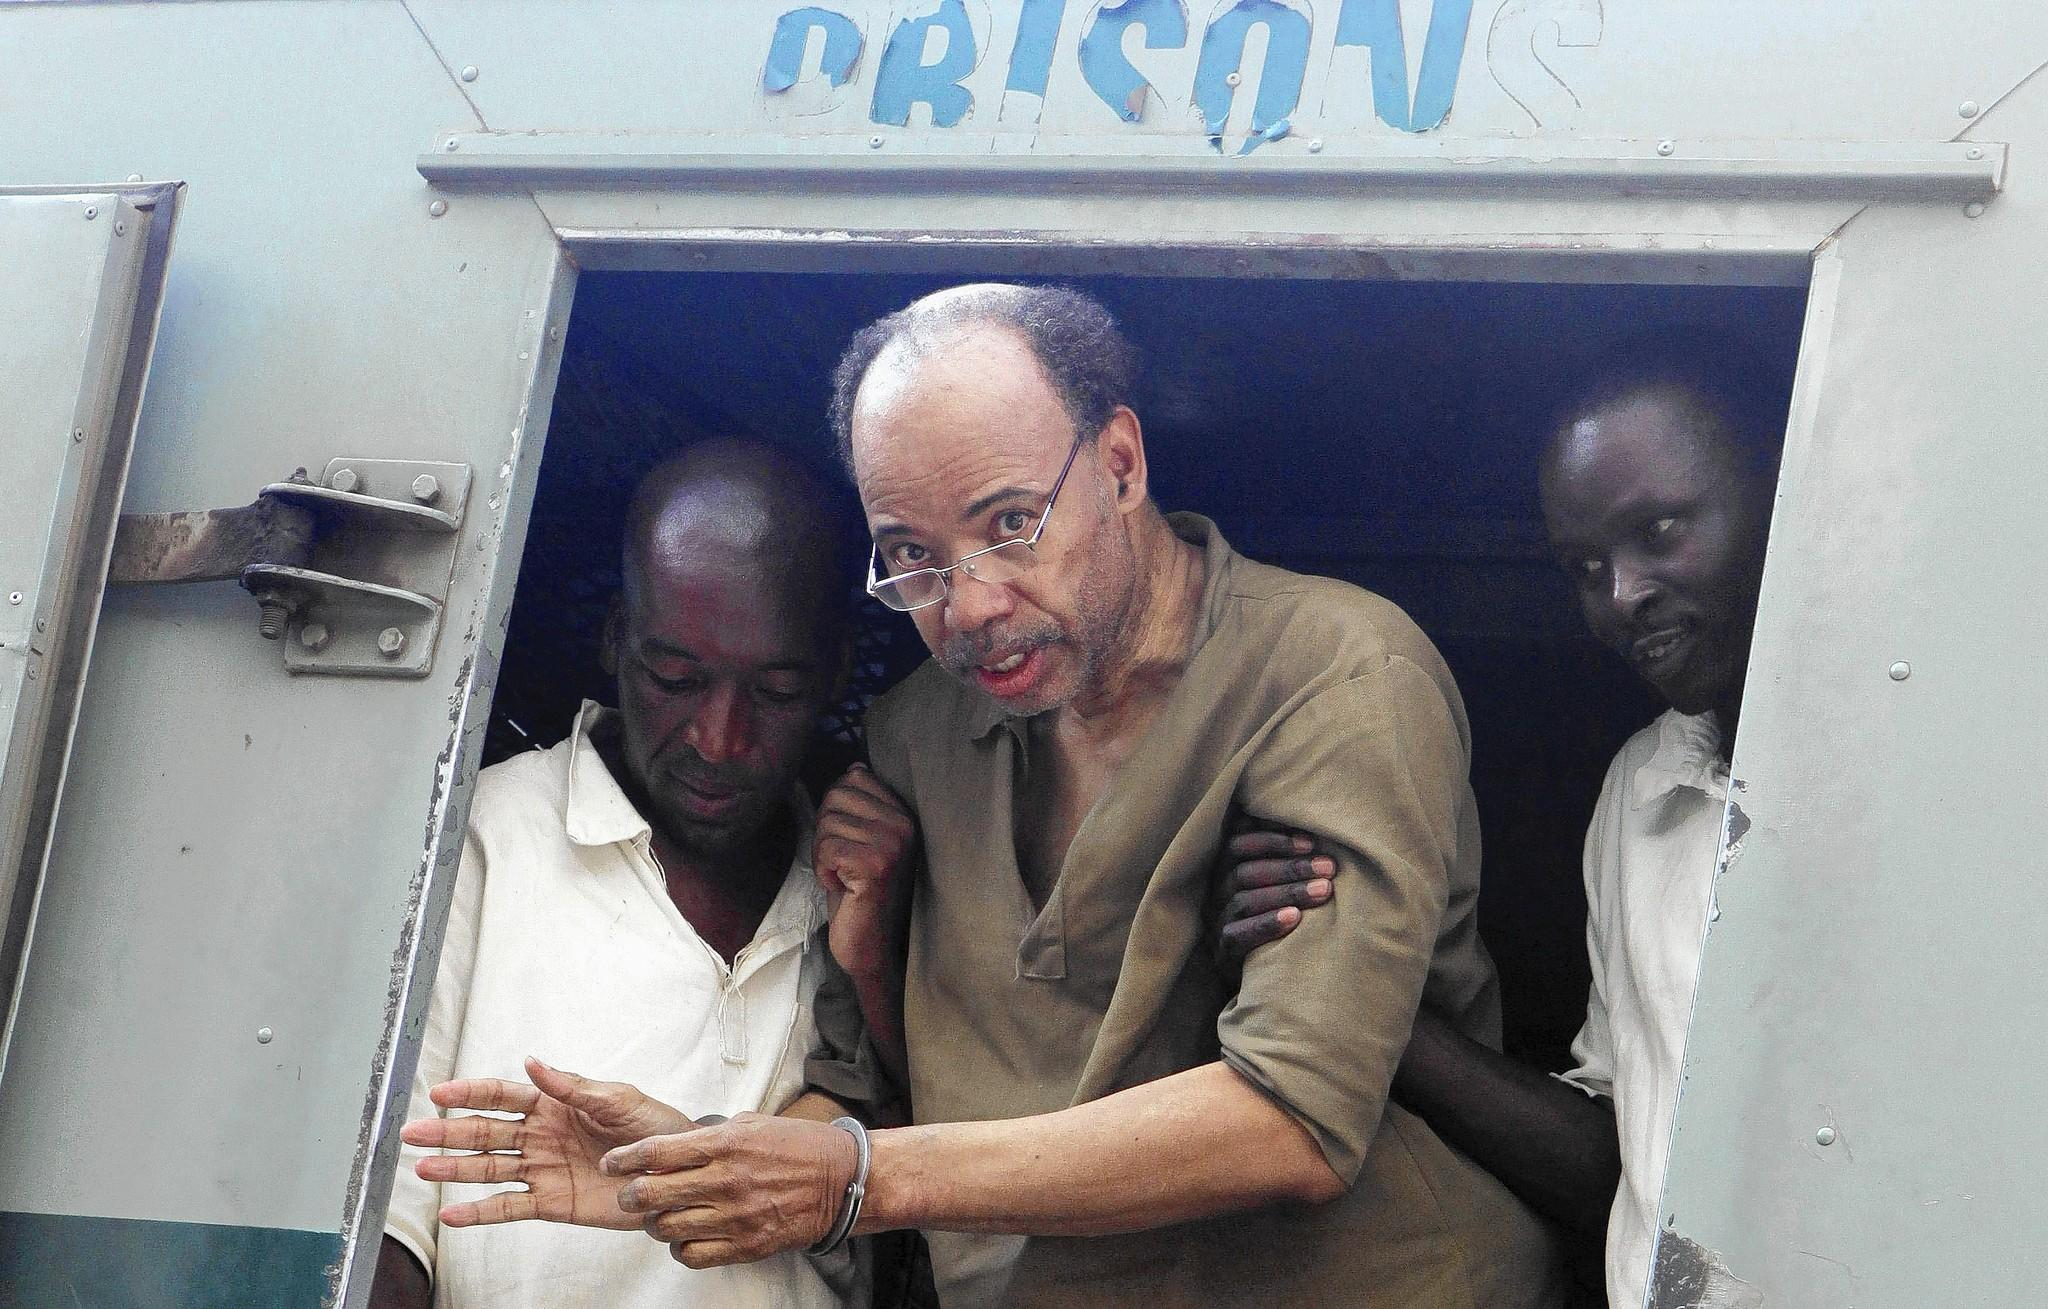 Former U.S. congressman Mel Reynolds pleaded not guilty in Zimbabwe to charges of possessing pornographic images. The charges were dropped.